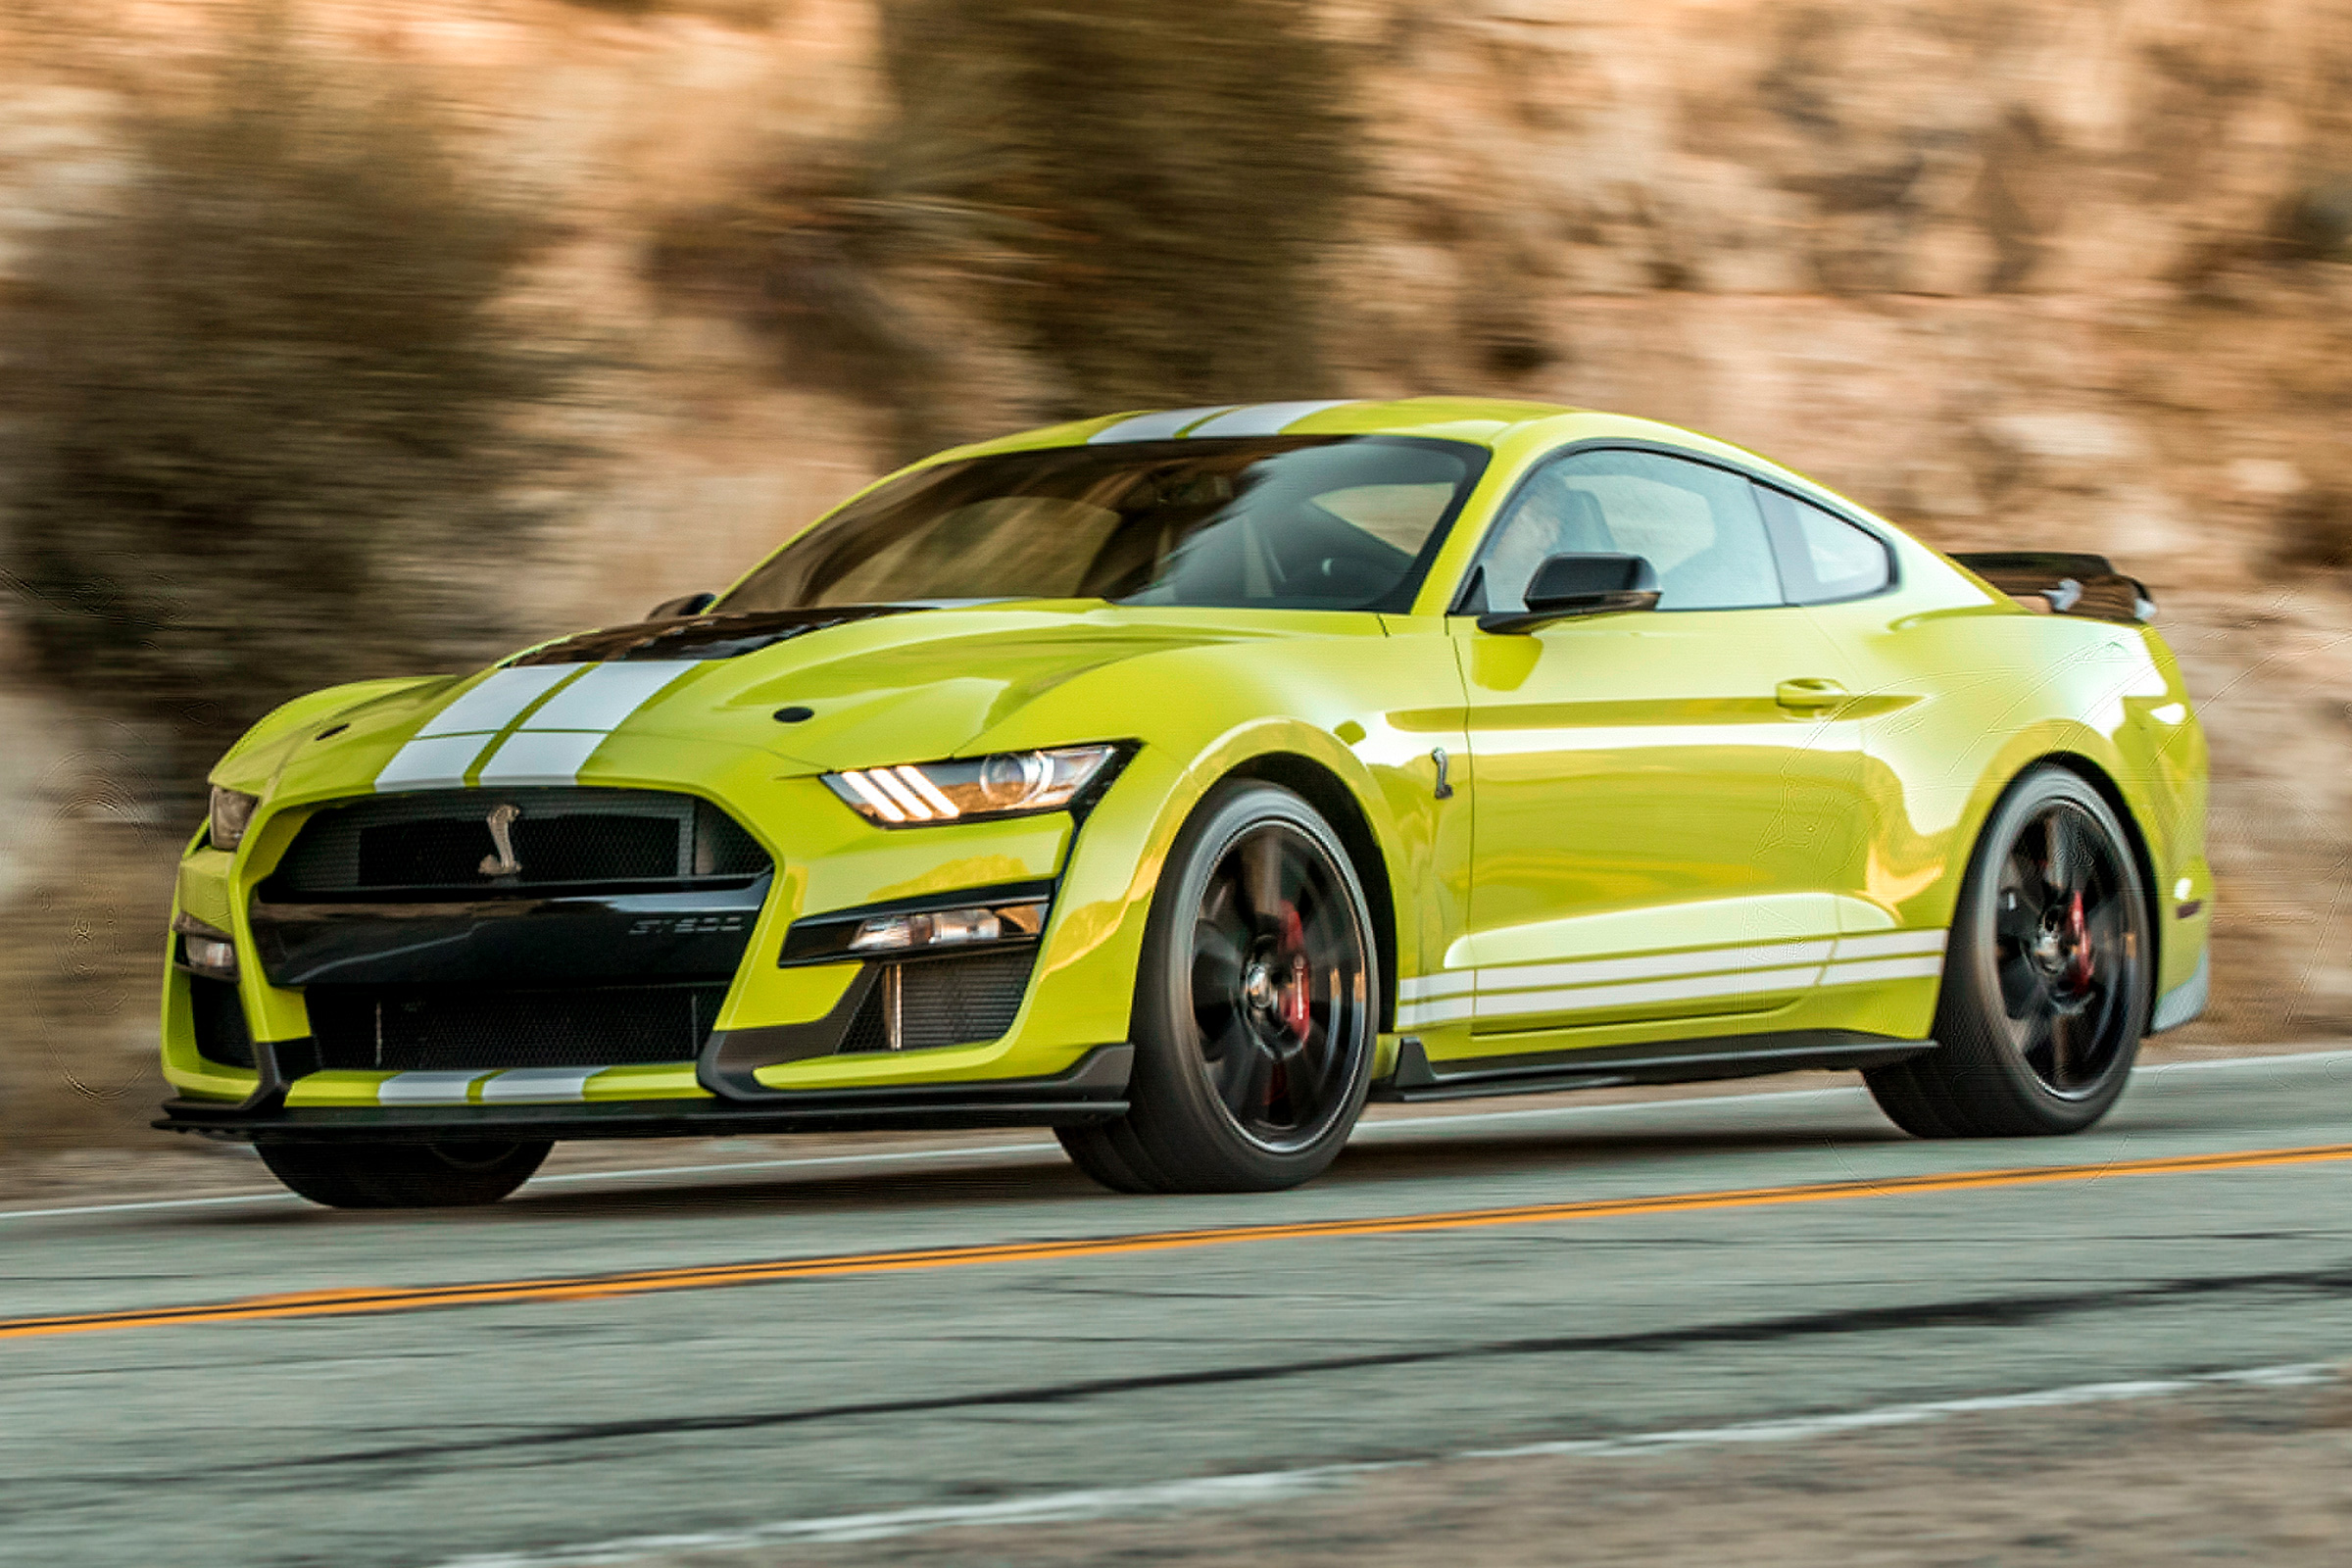 New Ford Mustang Shelby GT500 2019 review | Auto Express